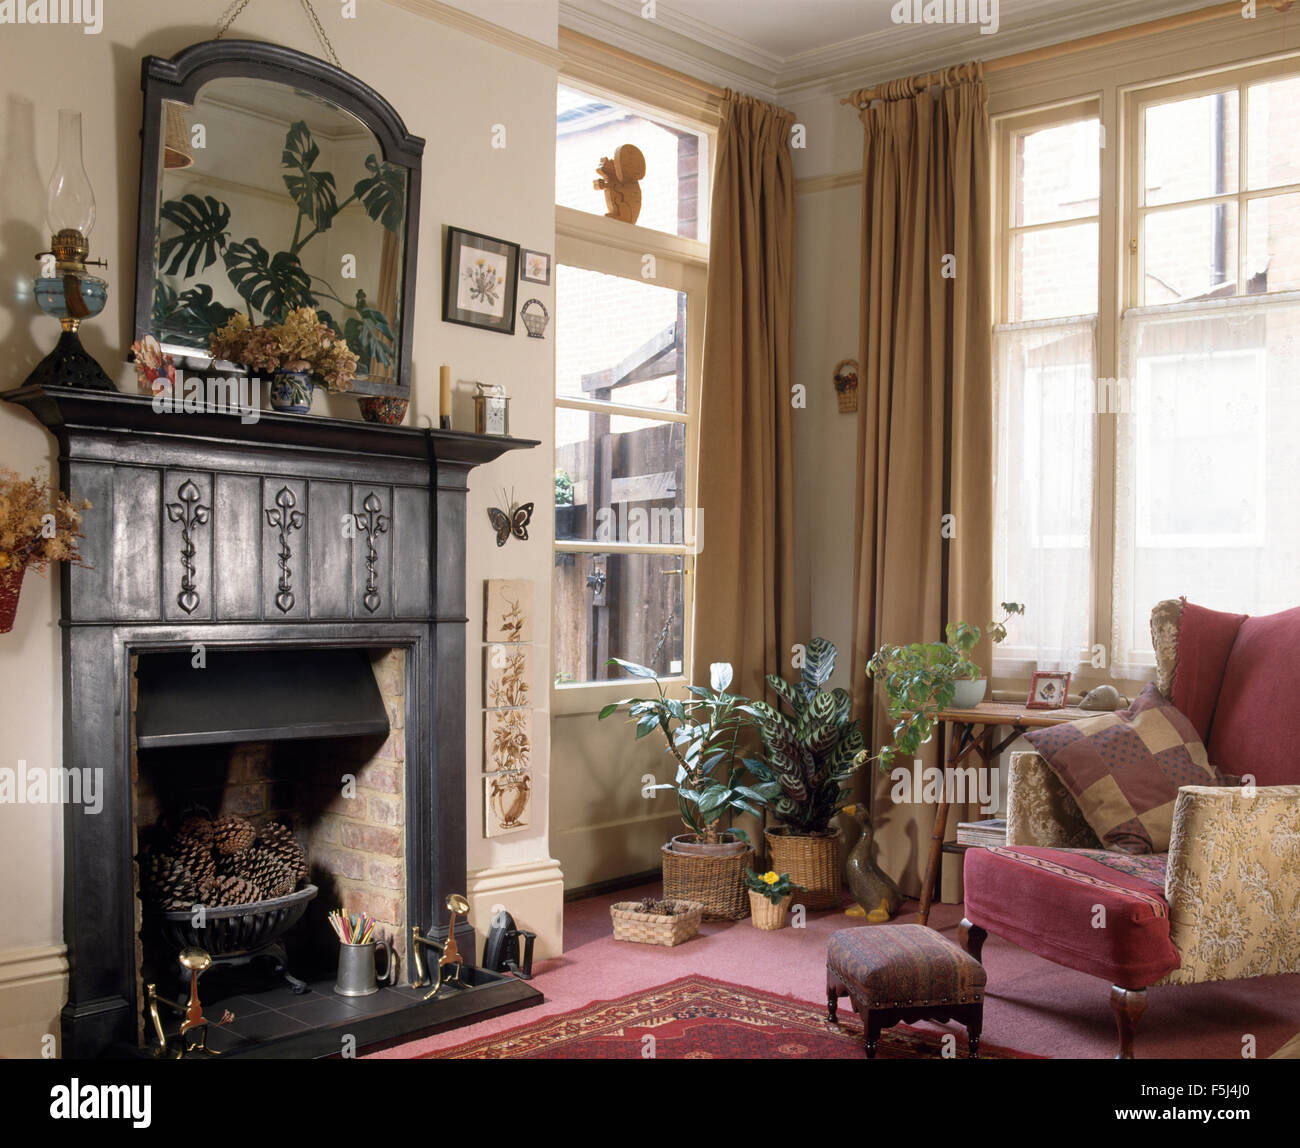 Original Cast Iron Edwardian Fireplace In A Seventies Townhouse Living Room With Vintage Wing Chair